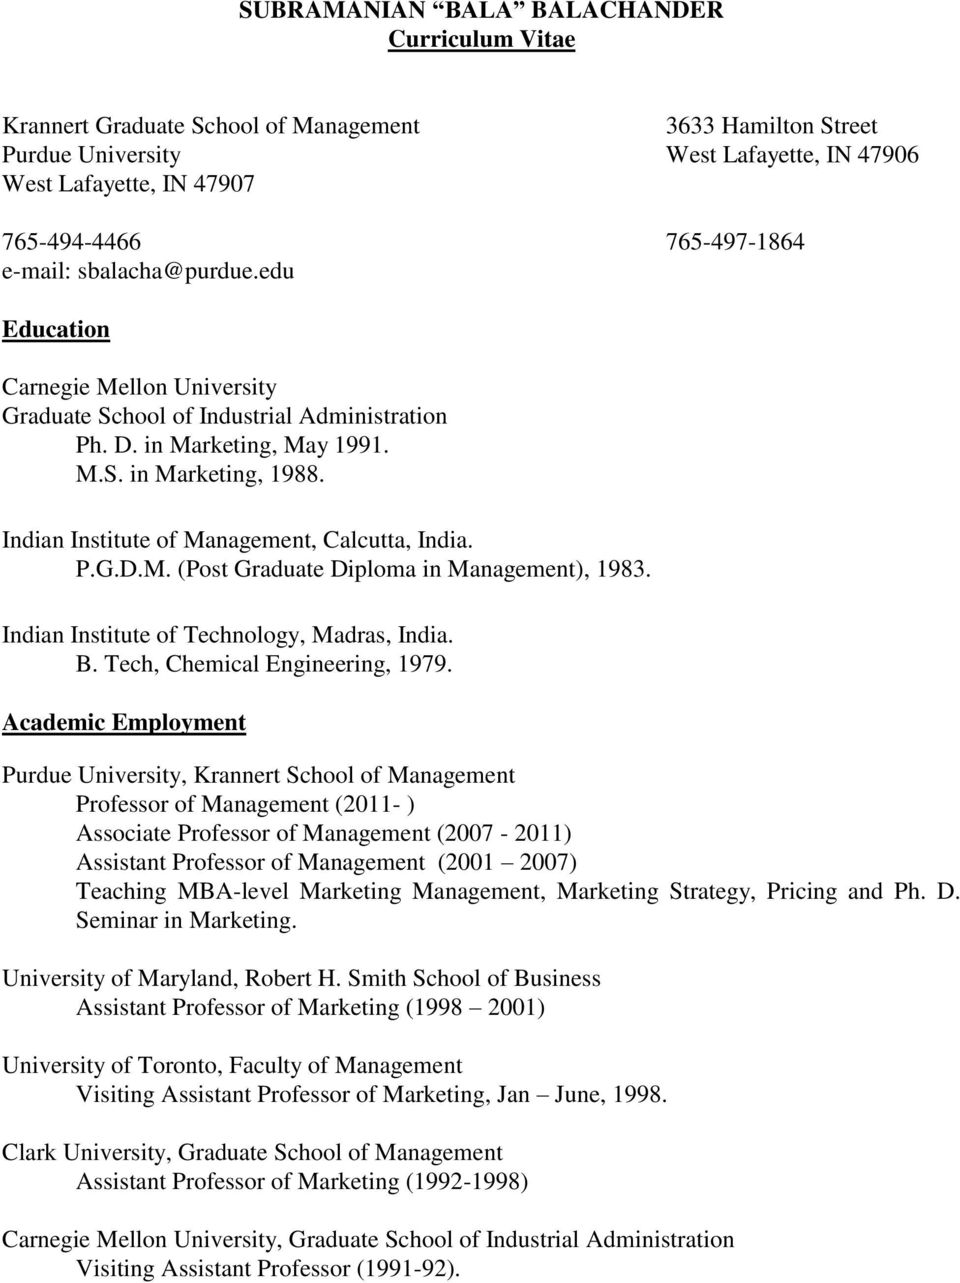 Indian Institute of Management, Calcutta, India. P.G.D.M. (Post Graduate Diploma in Management), 1983. Indian Institute of Technology, Madras, India. B. Tech, Chemical Engineering, 1979.